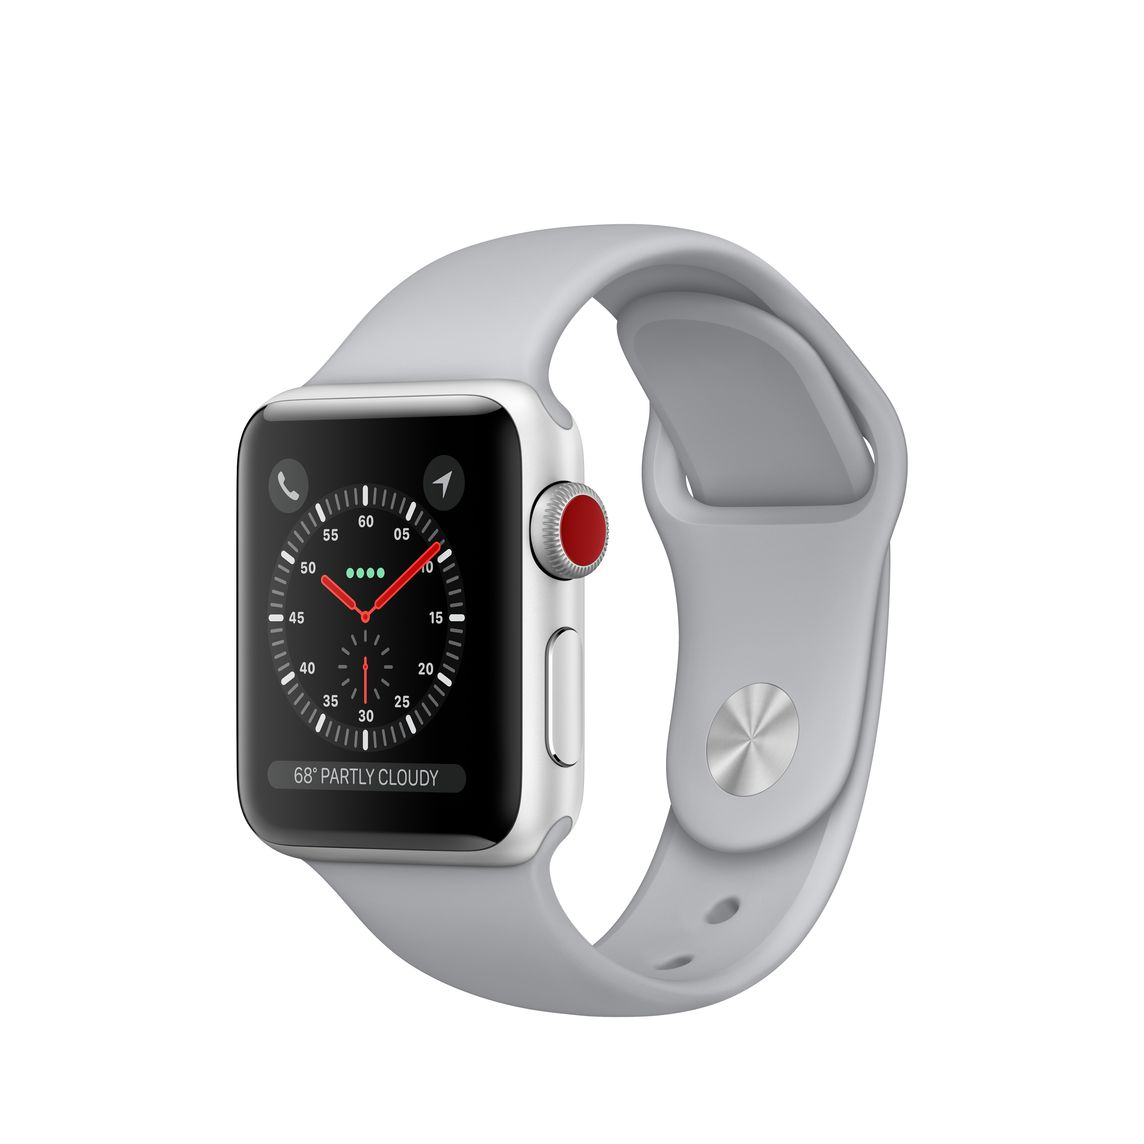 new products 58f0a 8614d Refurbished Apple Watch Series 3 GPS + Cellular, 38mm Silver Aluminum Case  with Fog Sport Band